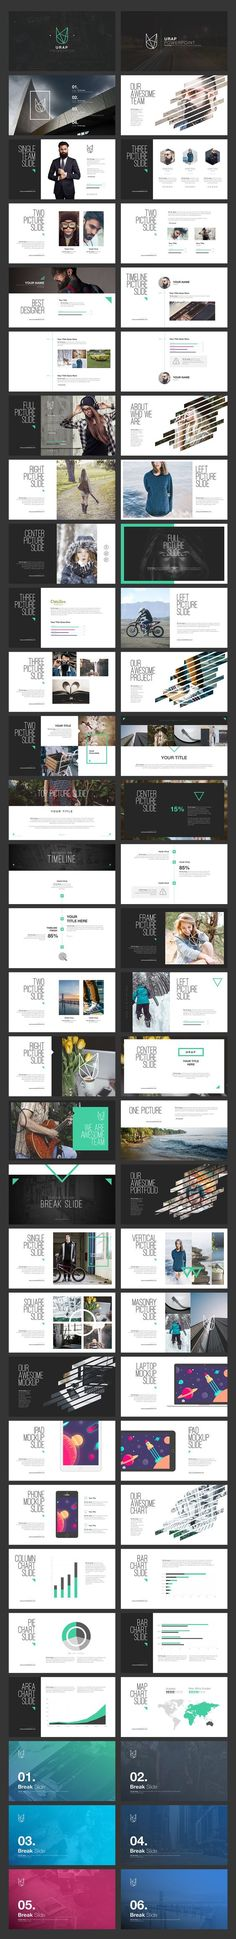 URAP PowerPoint Template by Angkalimabelas on @creativemarket: